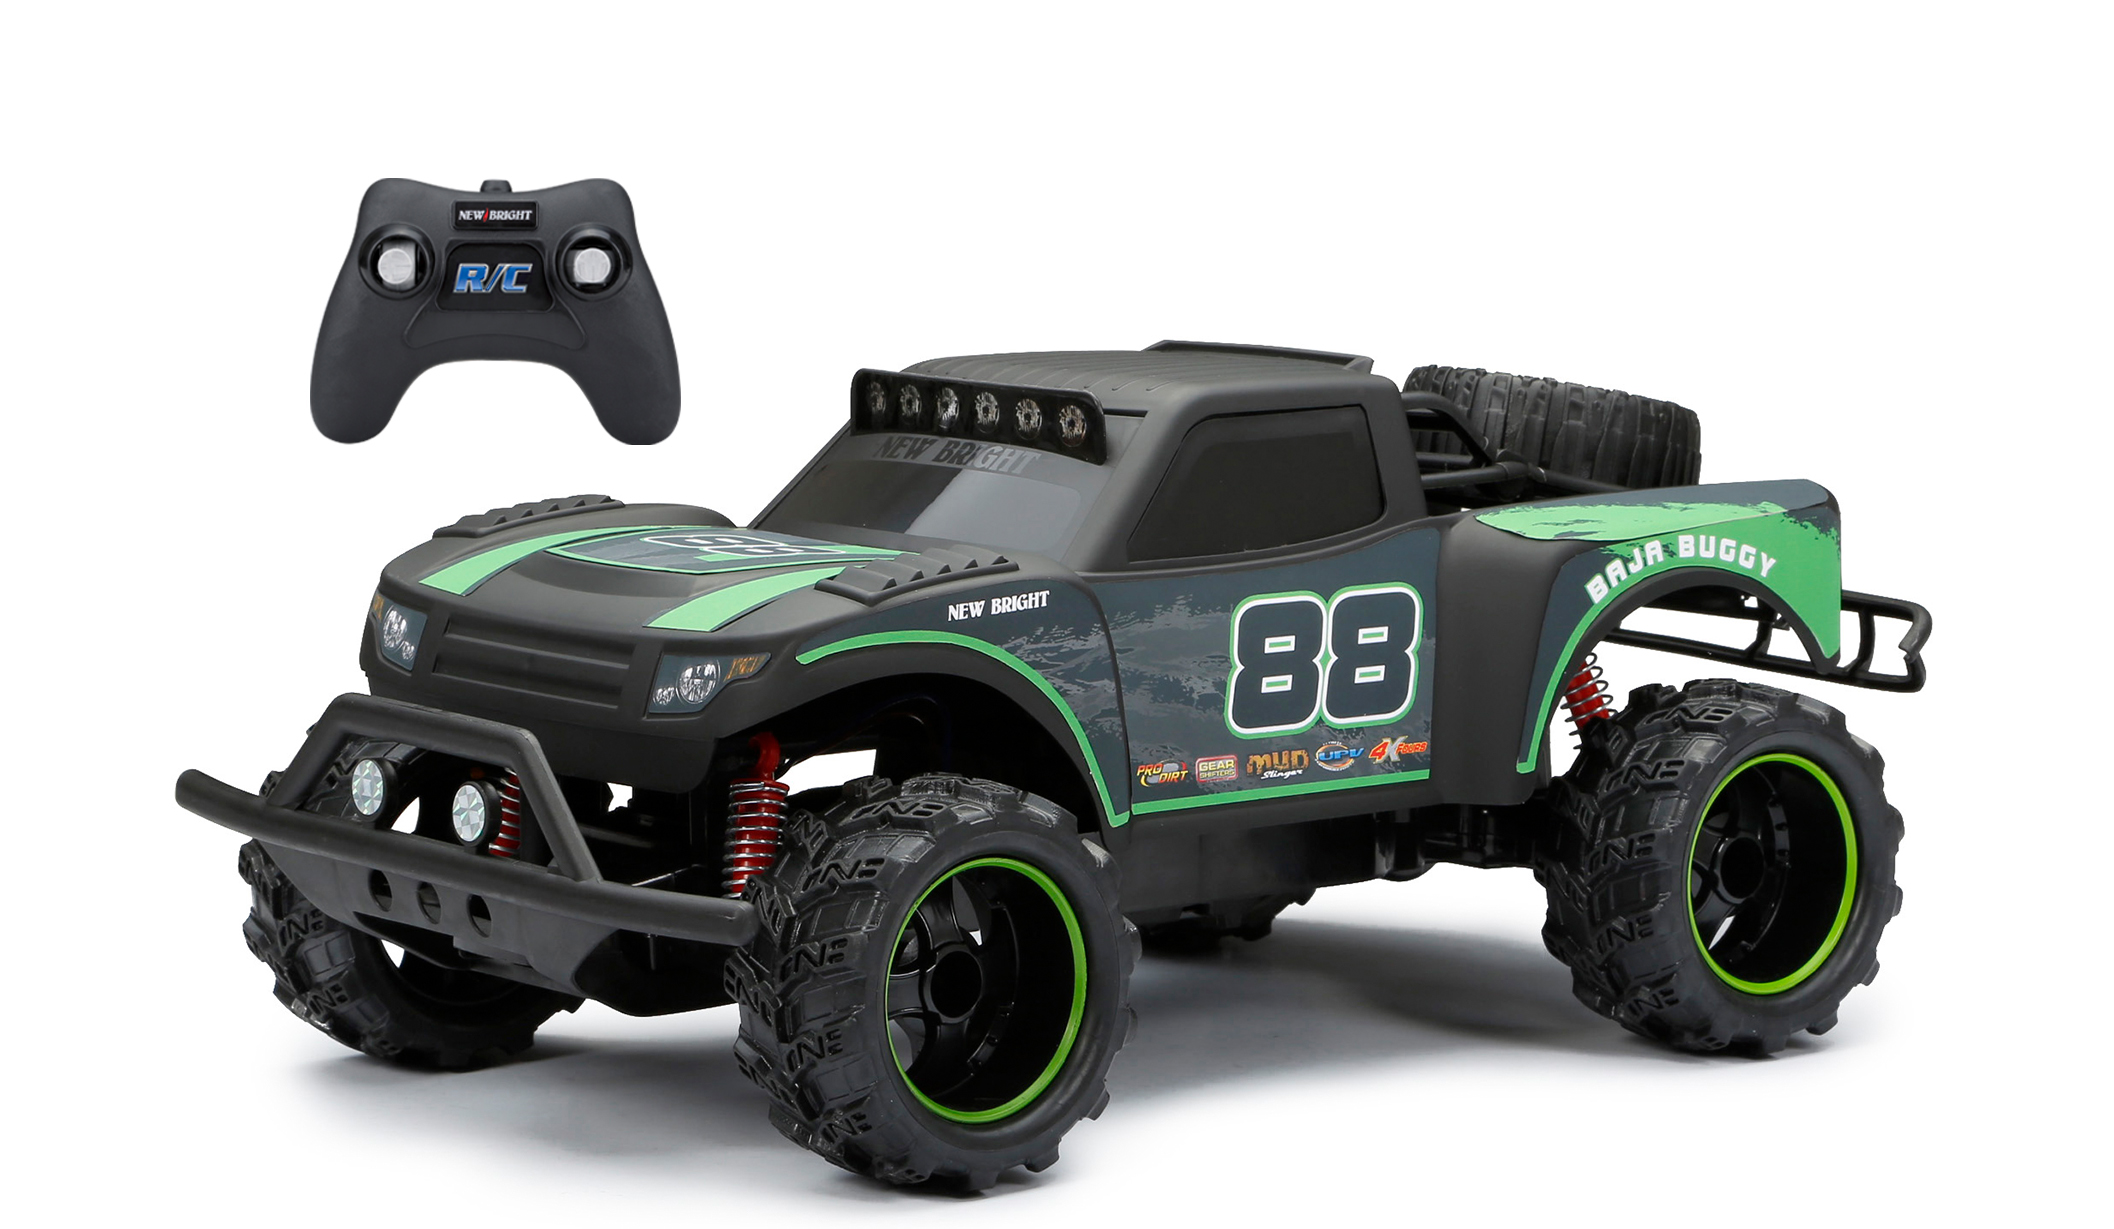 New Bright 1:14 Radio Control Baja Trophy Buggy Black by New Bright Industrial Co., Ltd.